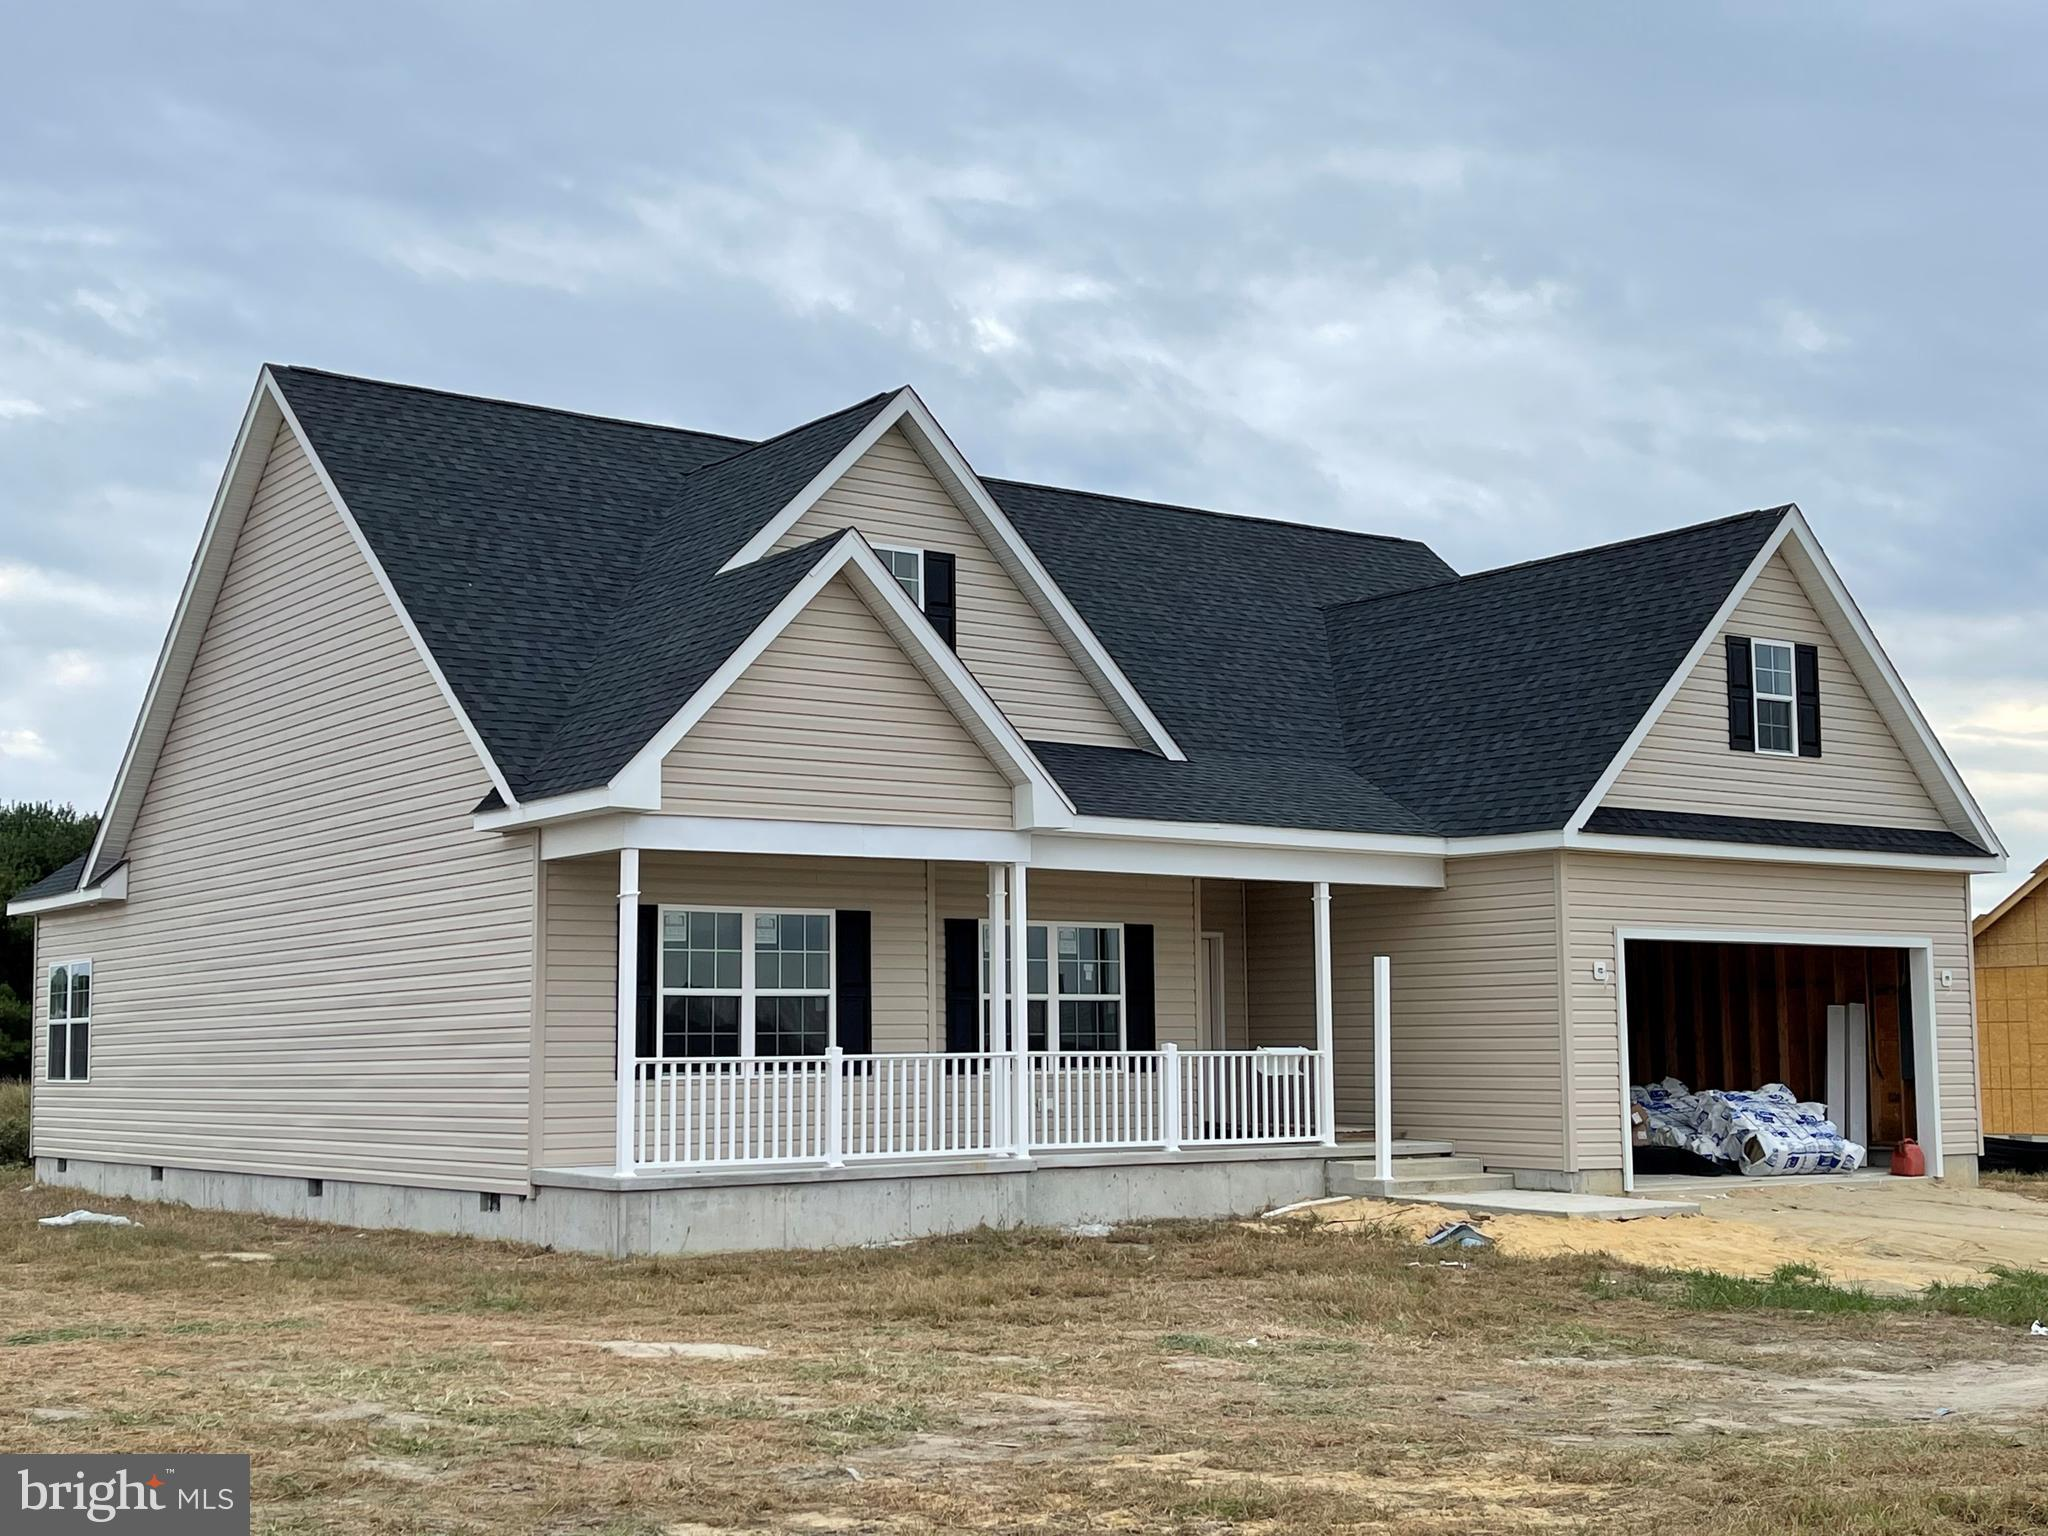 This beautiful, contemporary new construction 2170 SF +- home is currently under construction on the